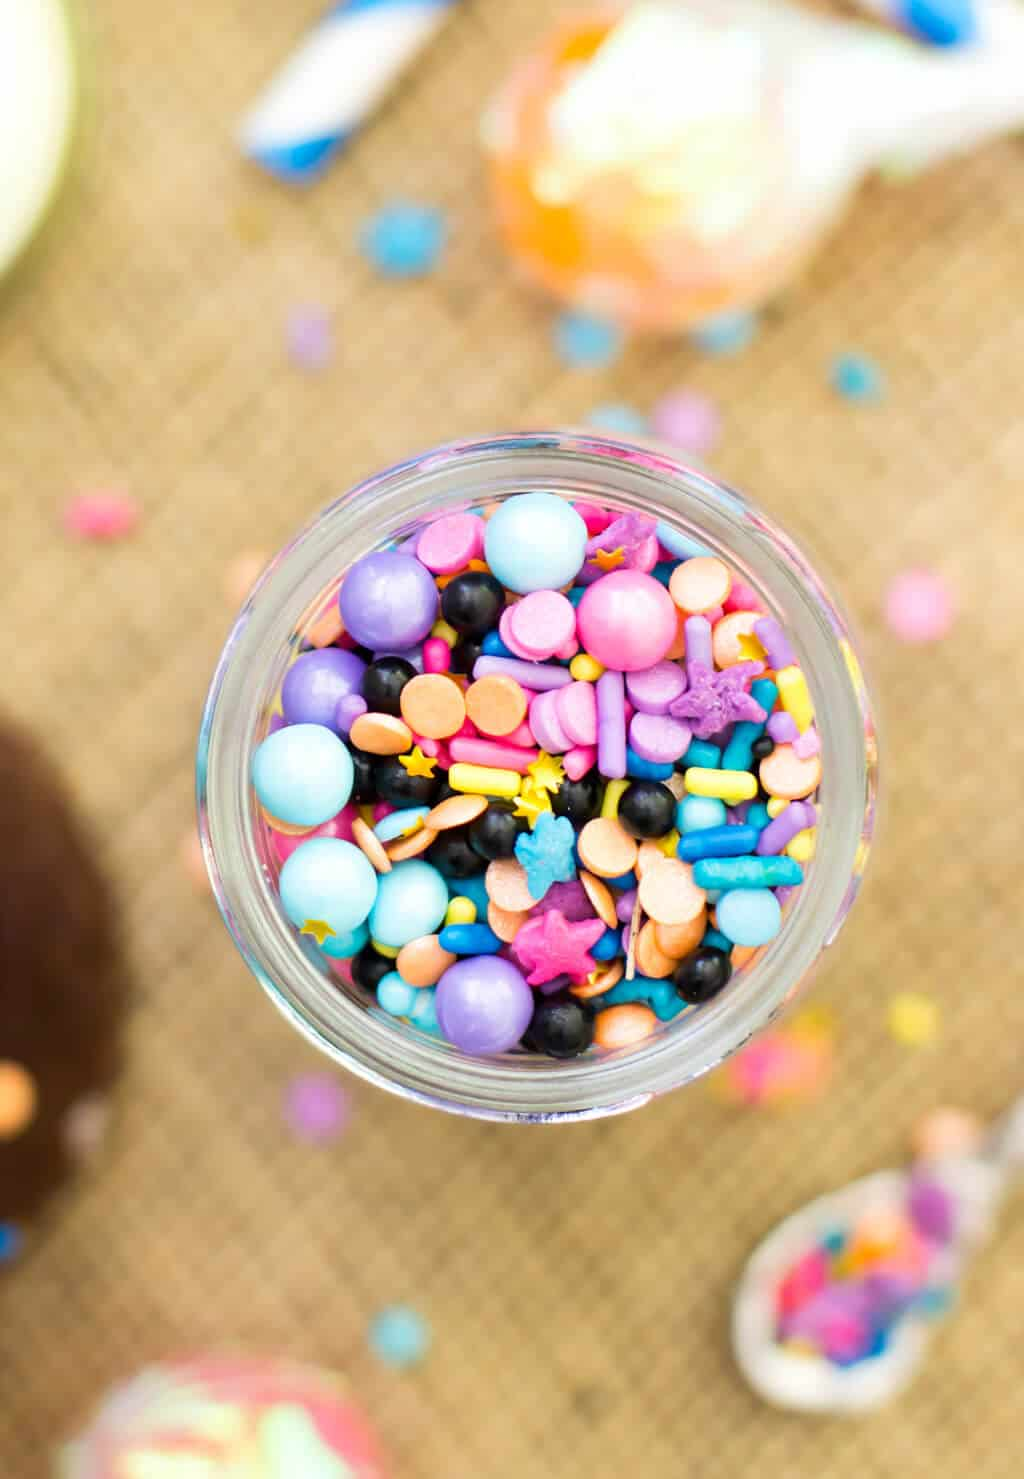 A jar of colorful sprinkles